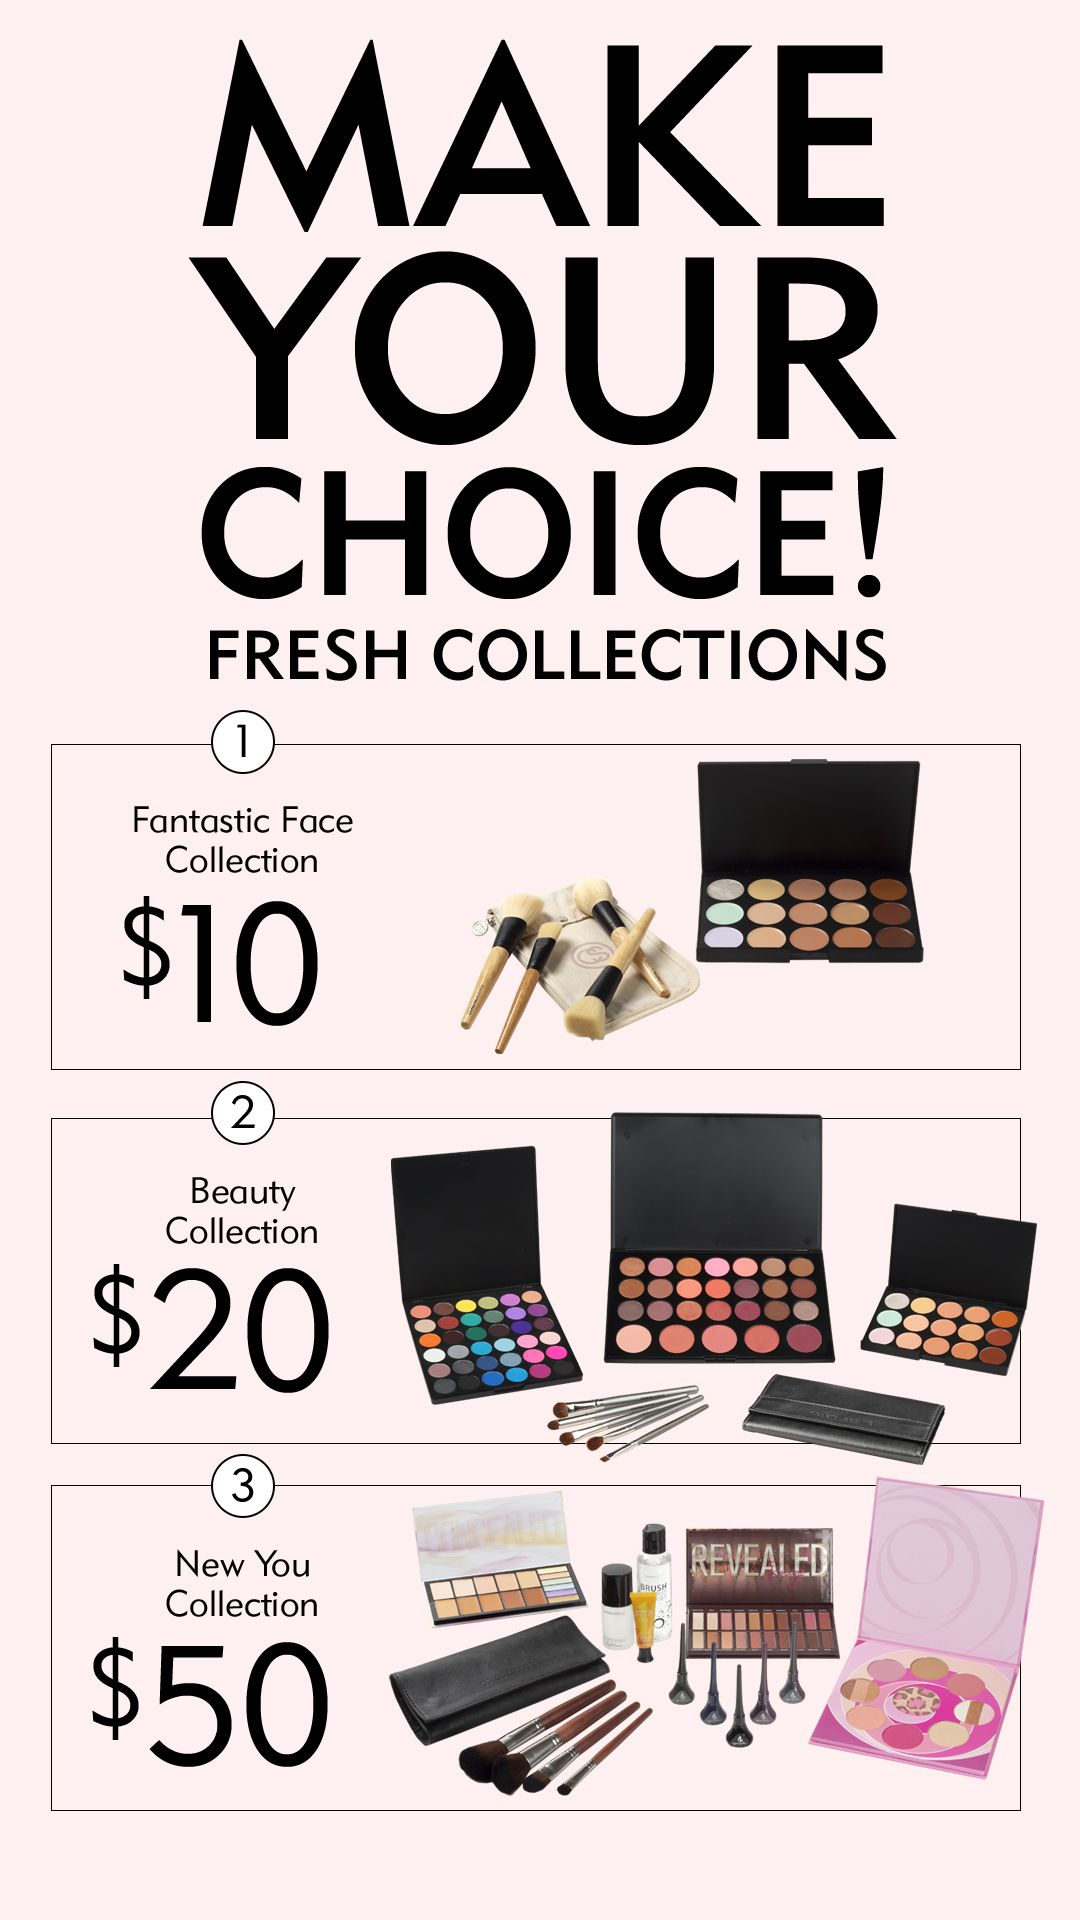 Make Your Choice 3 Fresh Collections Tell Us Your Fave 1 2